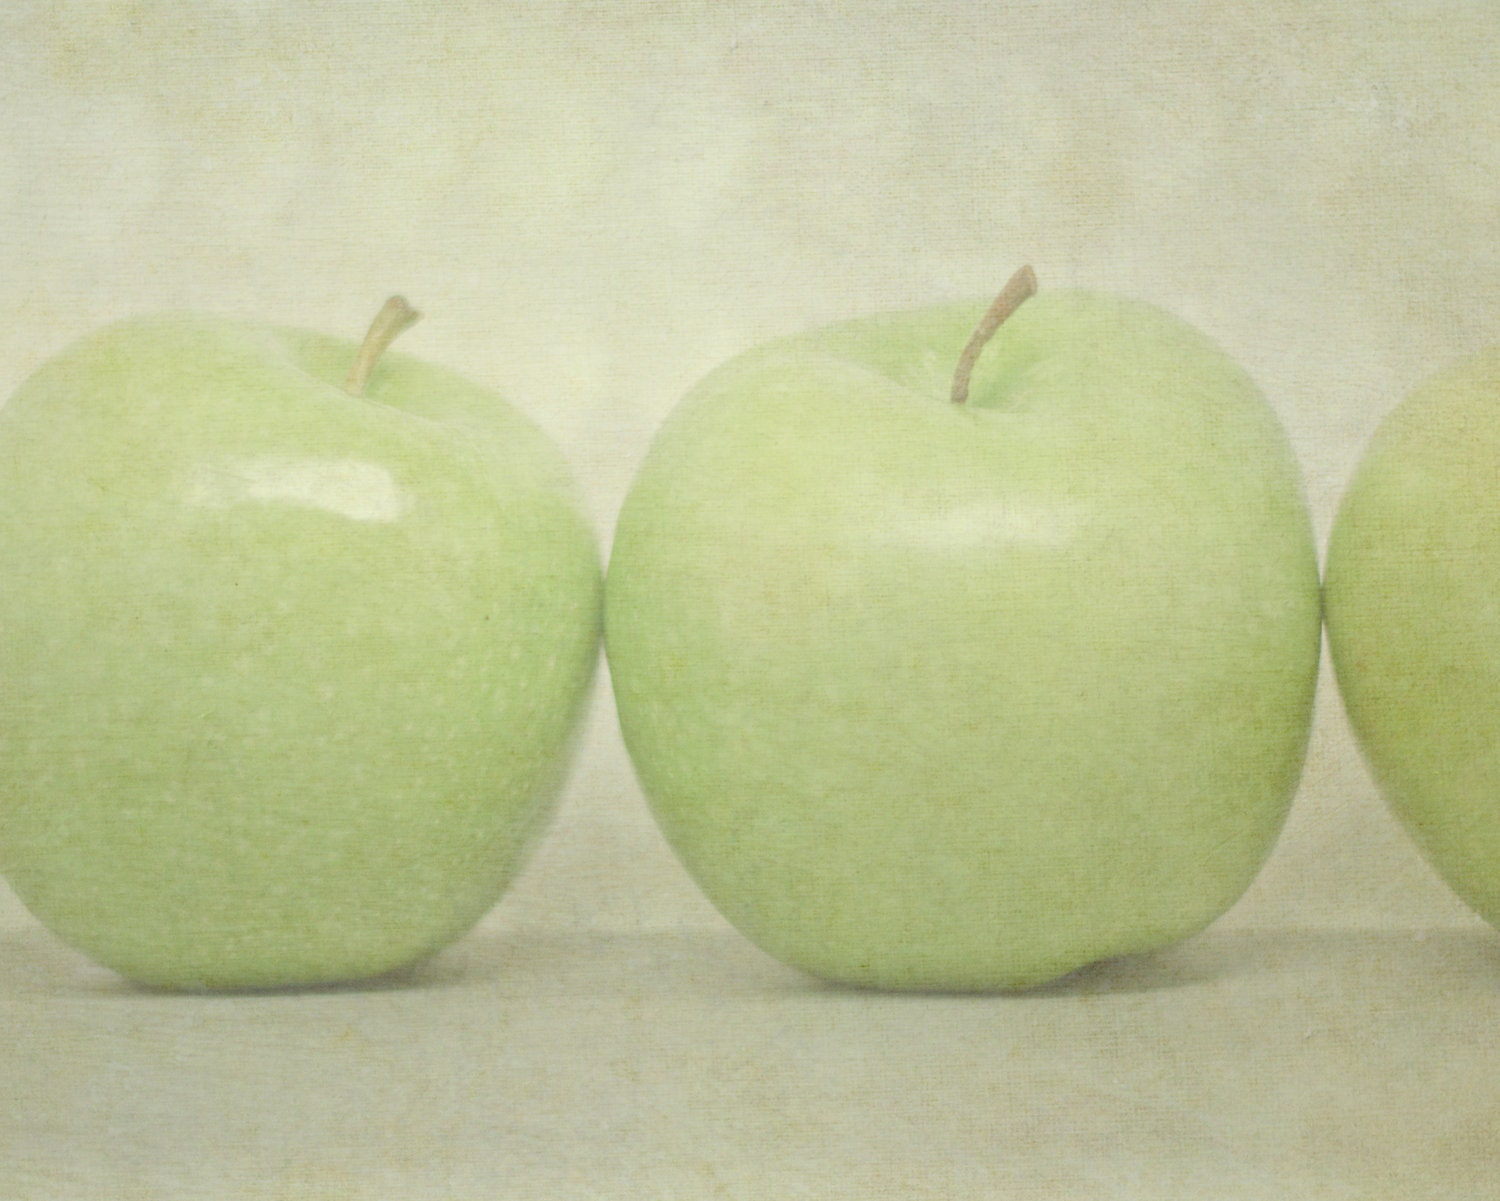 Green apple kitchen decor viewing gallery - Green apple kitchen decor ...